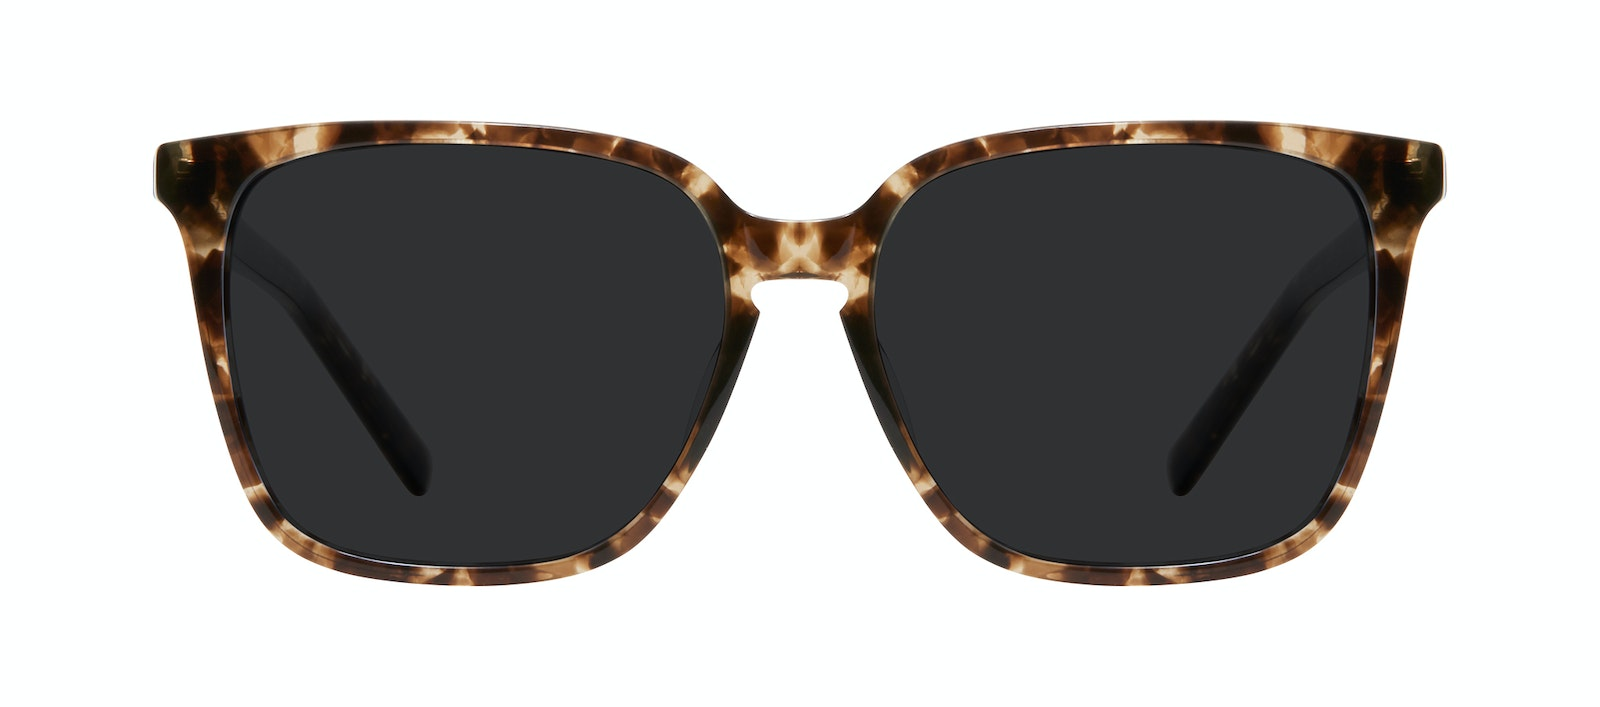 Affordable Fashion Glasses Square Sunglasses Women Runway L Leopard Front